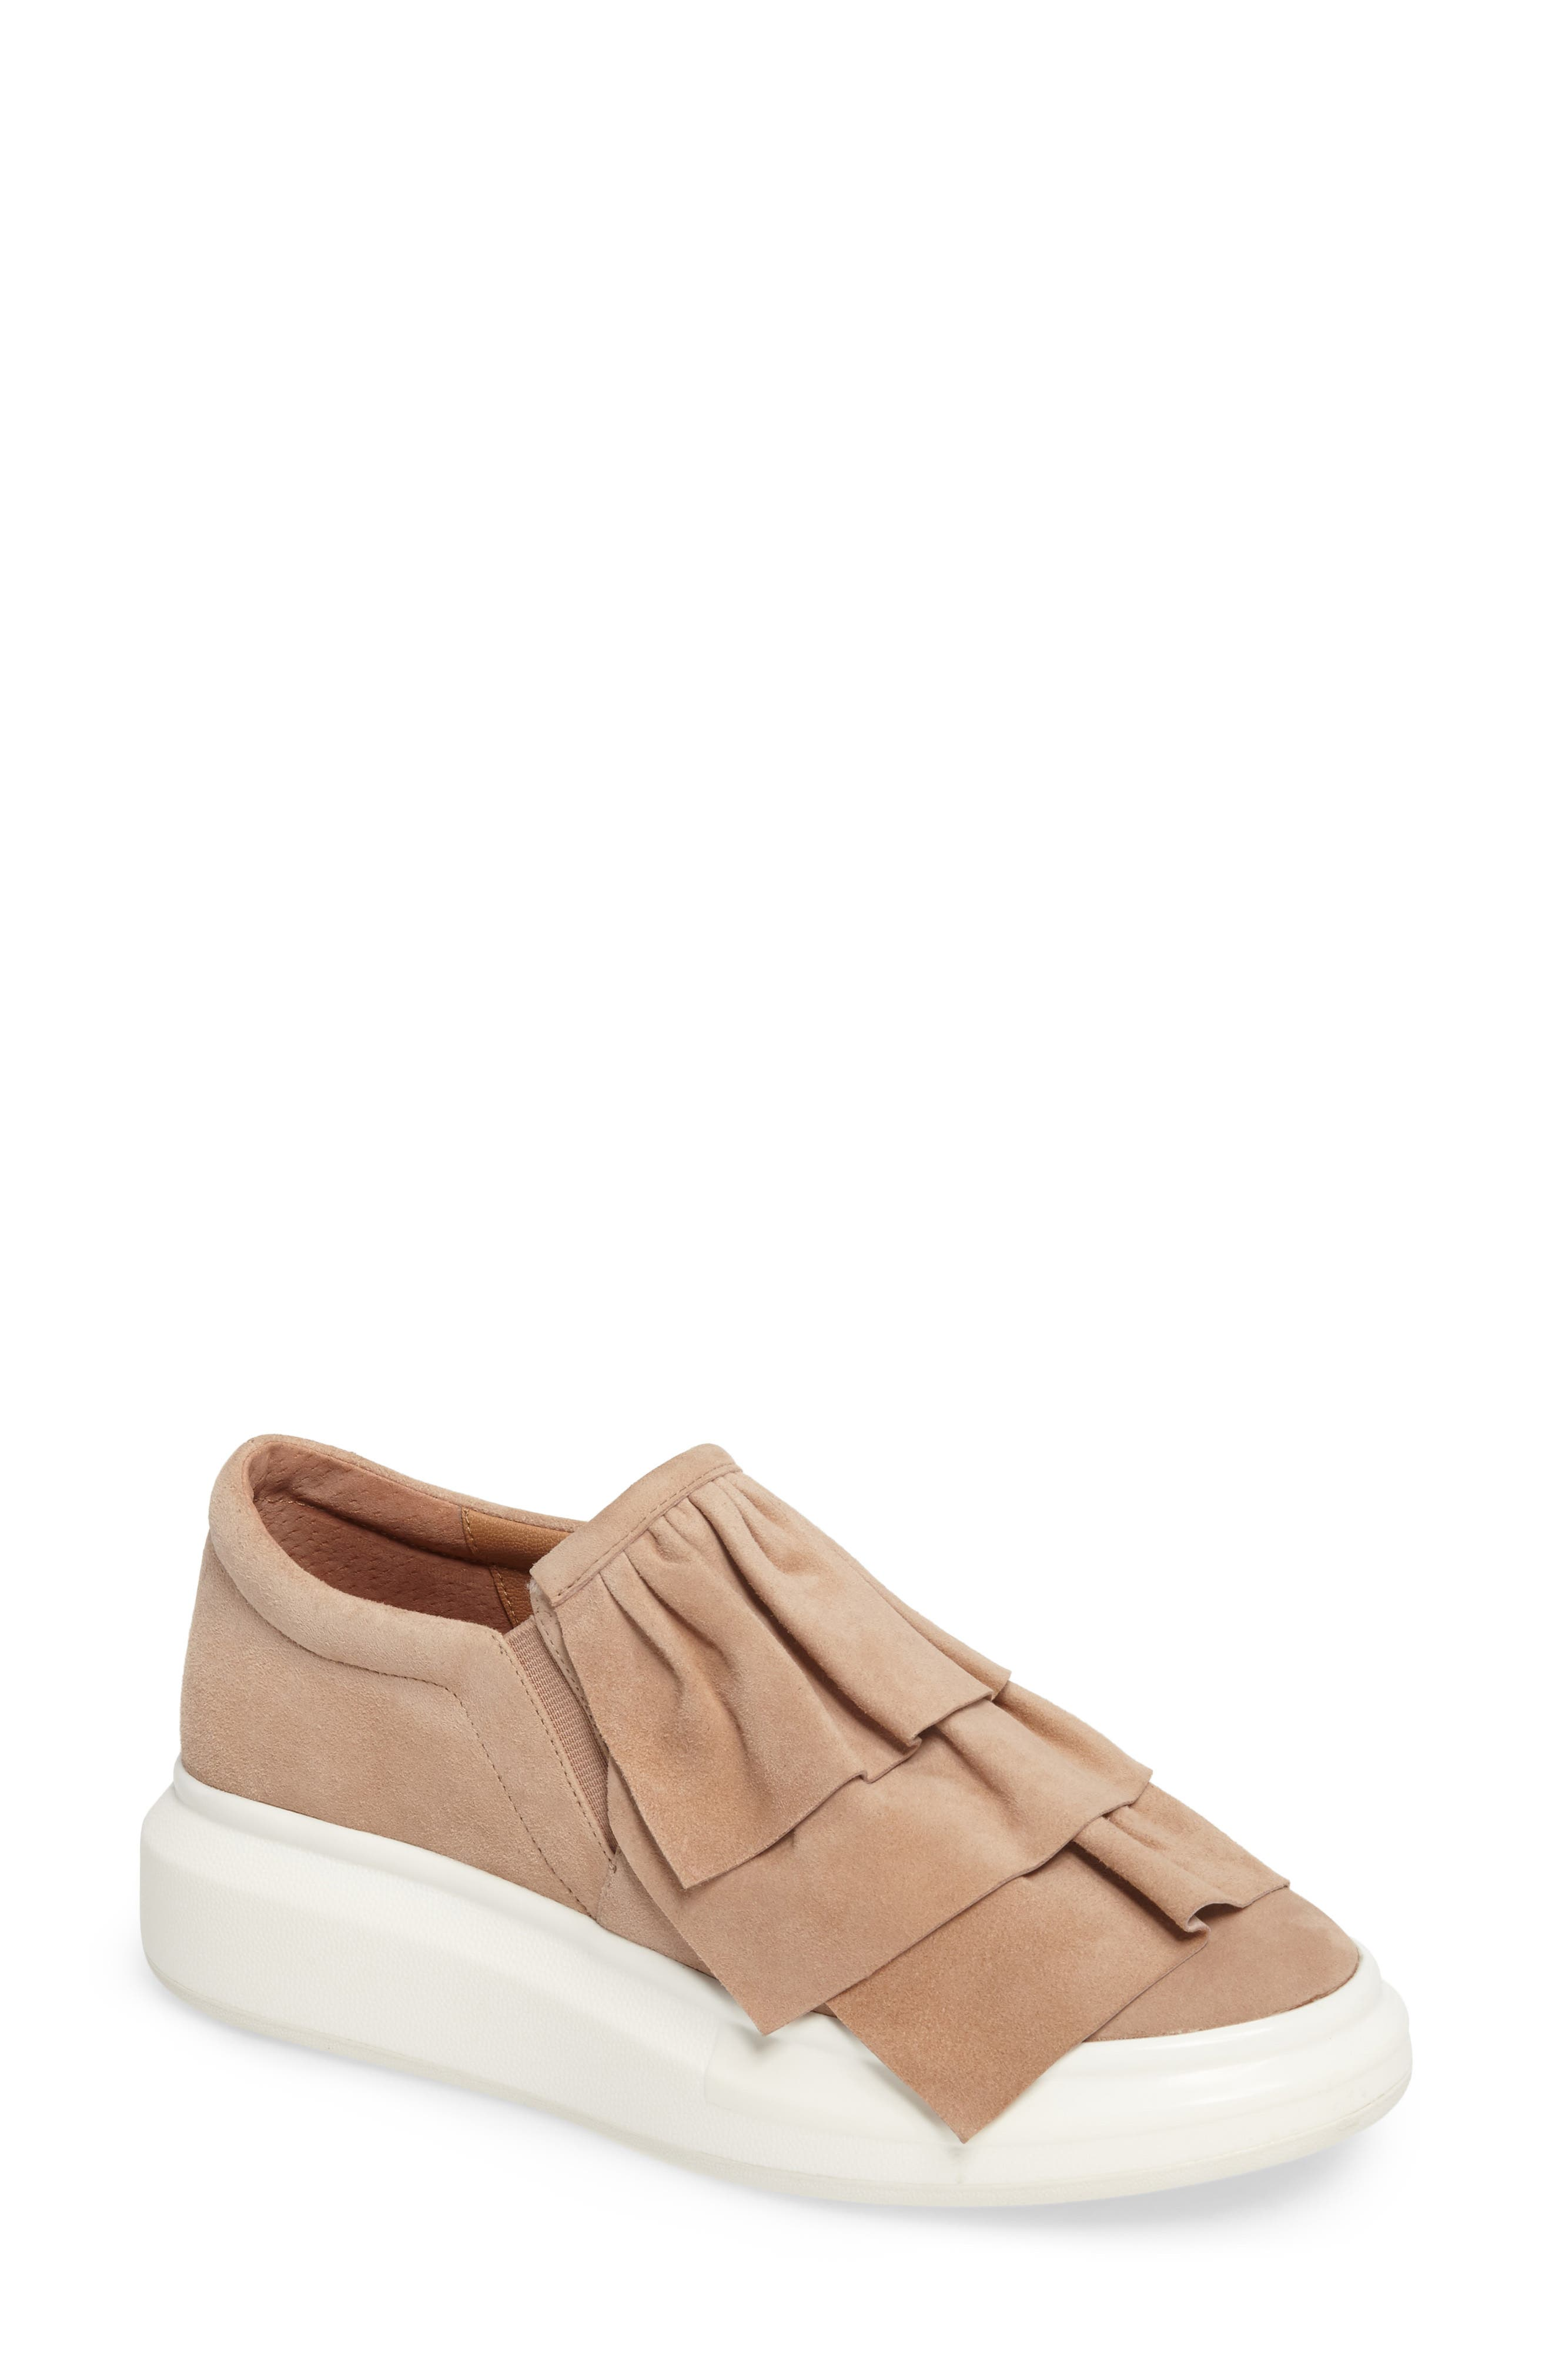 Lolo Ruffle Slip-On,                             Main thumbnail 1, color,                             Dusty Rose Suede